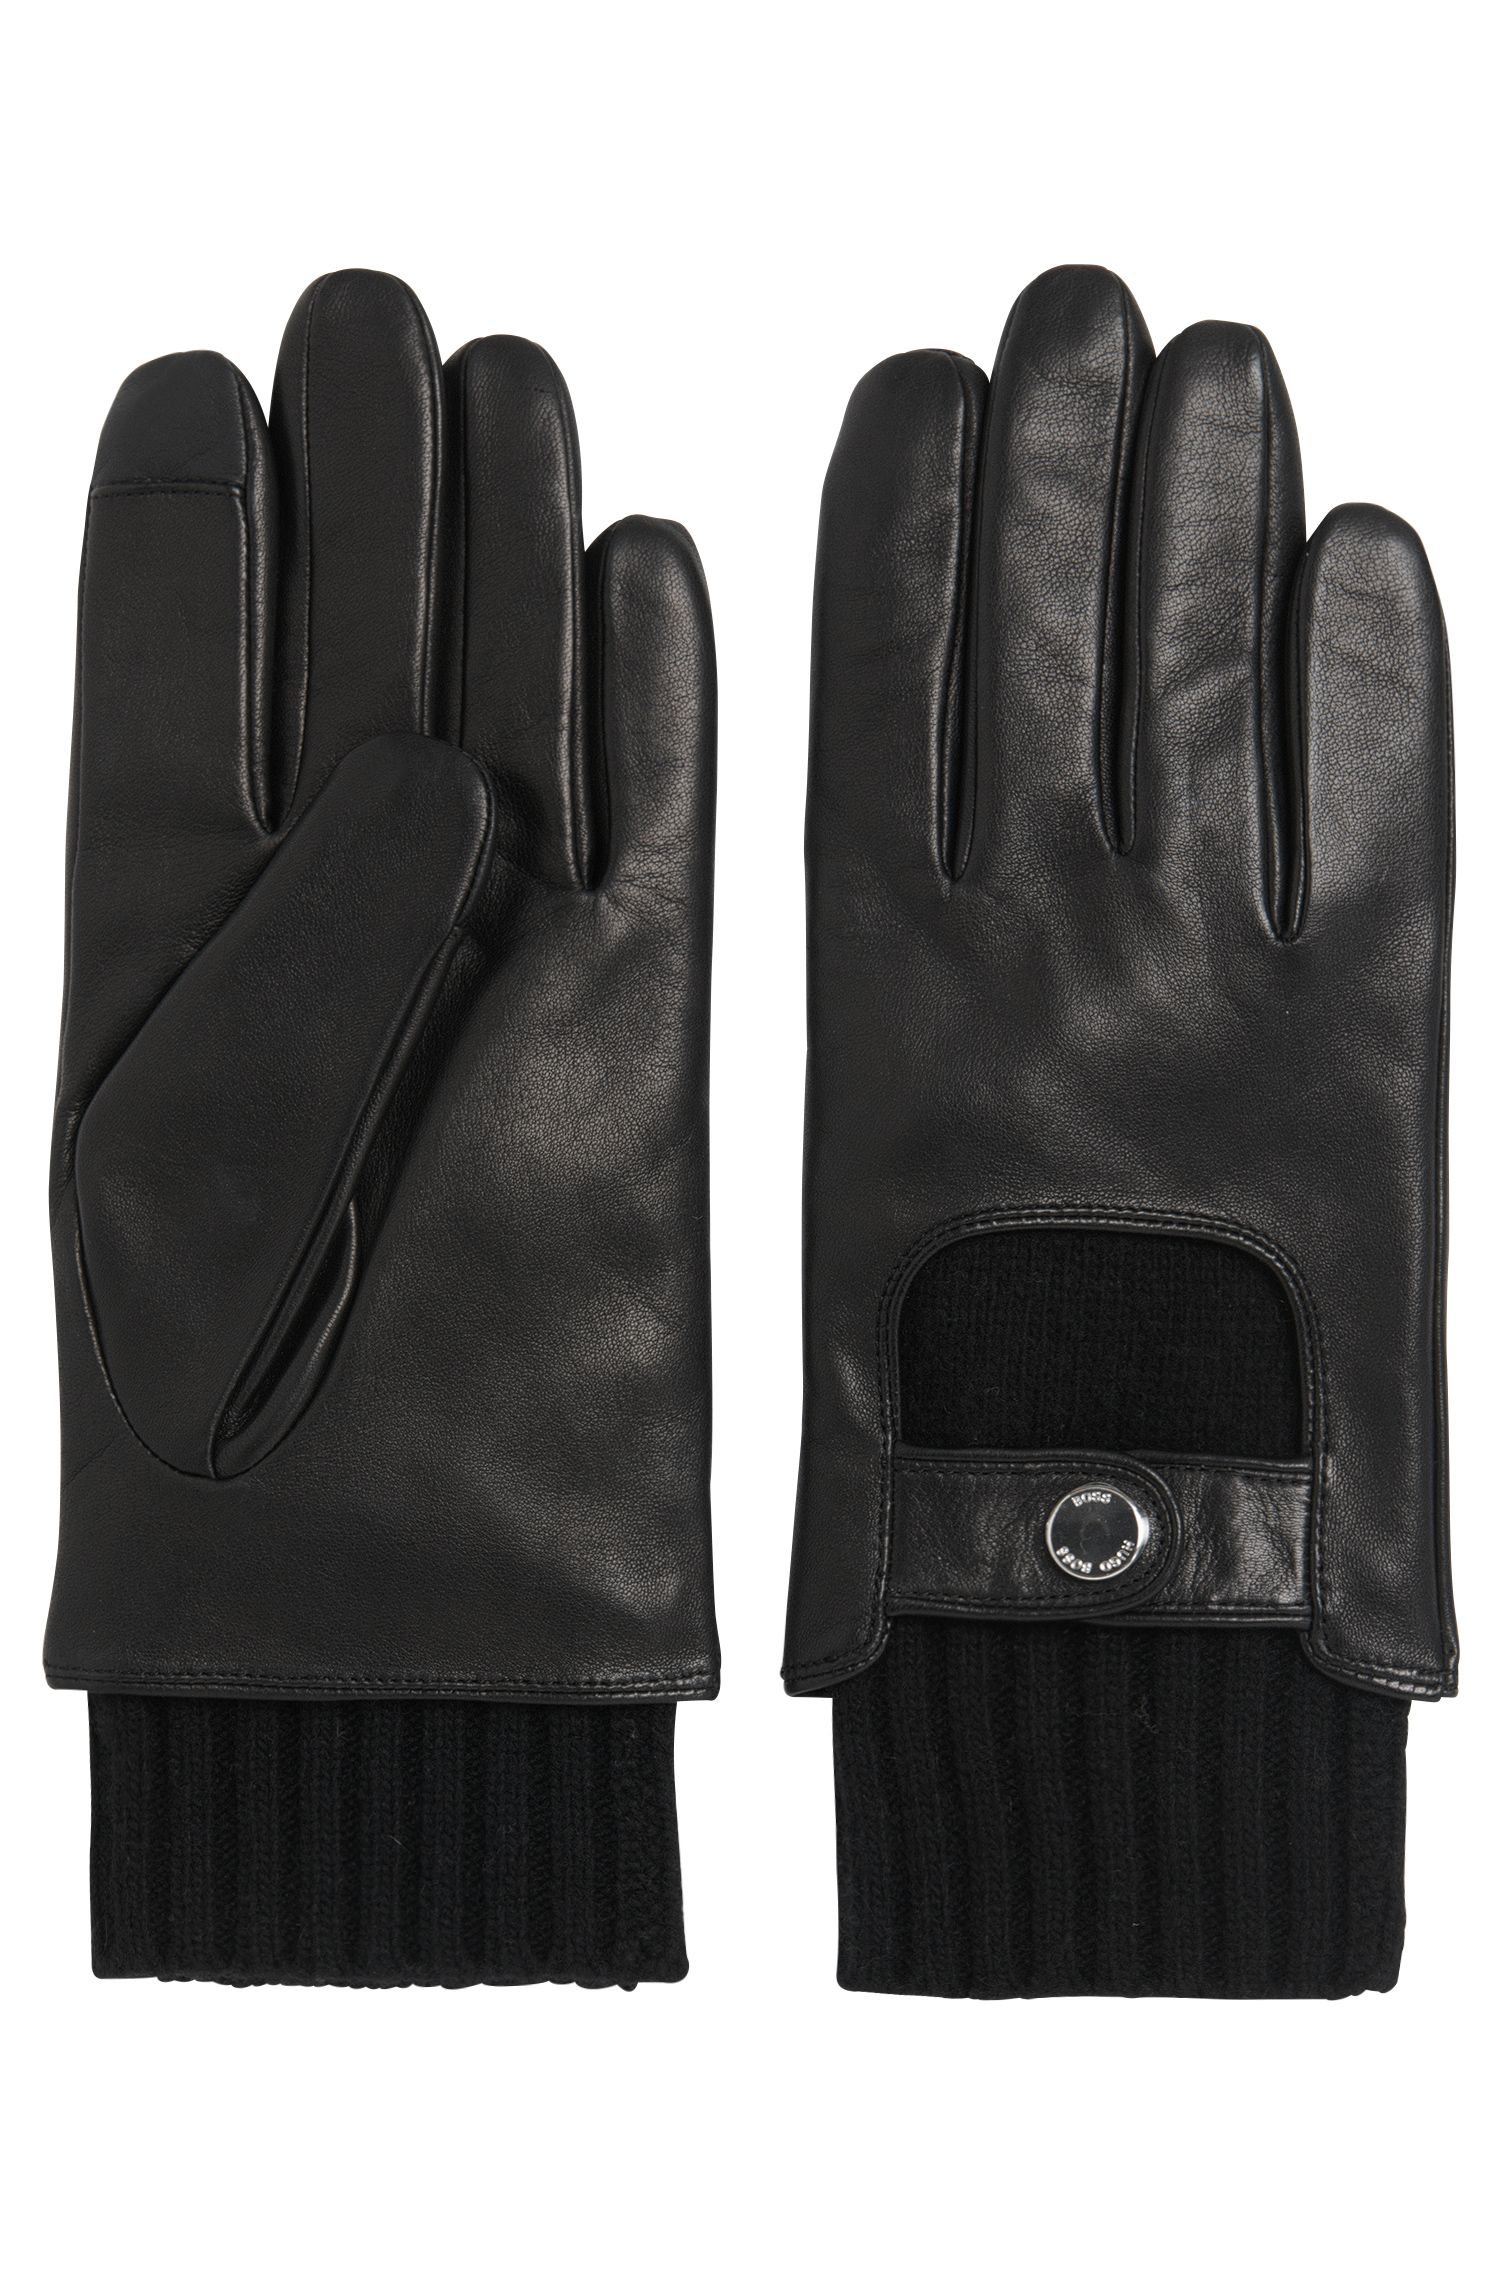 Gants Tailored en cuir avec incrustations en maille : « T-Hesky-TT »